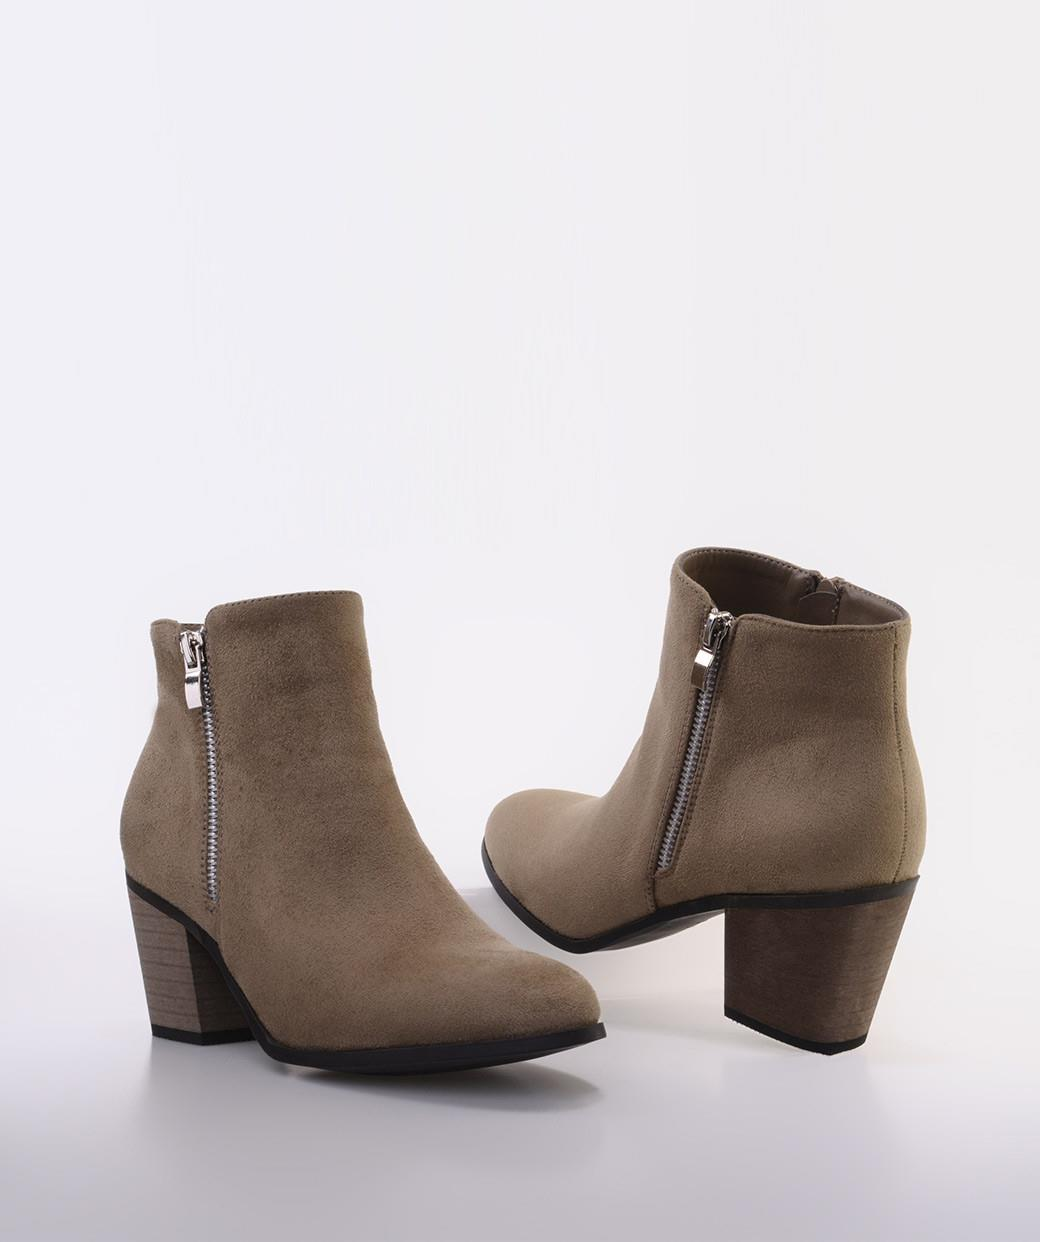 booties-ankle-boots-marypaz.  Cowboy inspired ankle boots